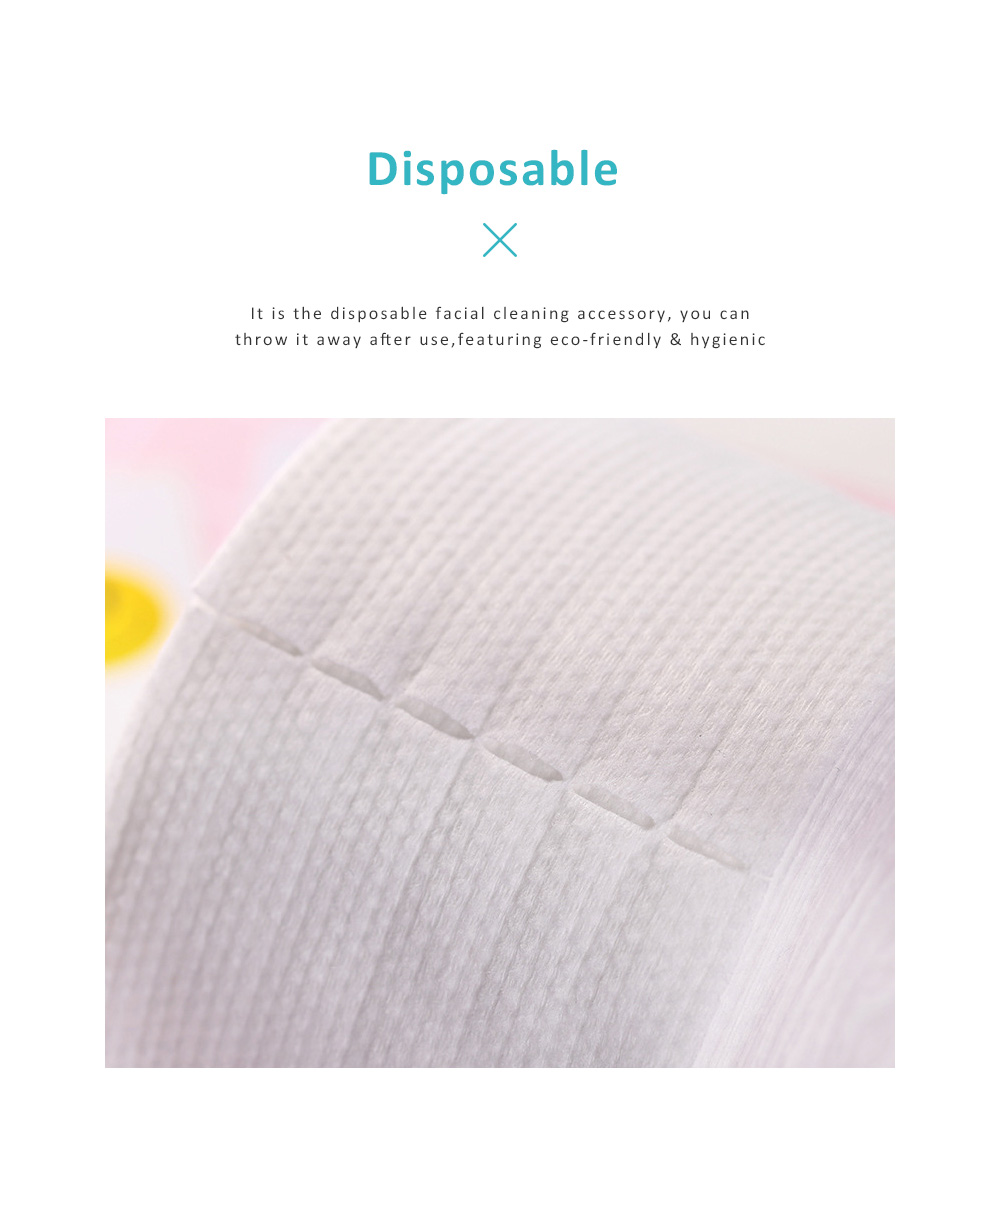 Dual Use Dry Wet Face Towel Make Up Cleanser Disposable Facial Cleaning Tissue Natural Cotton Soft Towel Hygienic Makeup Accessory 3